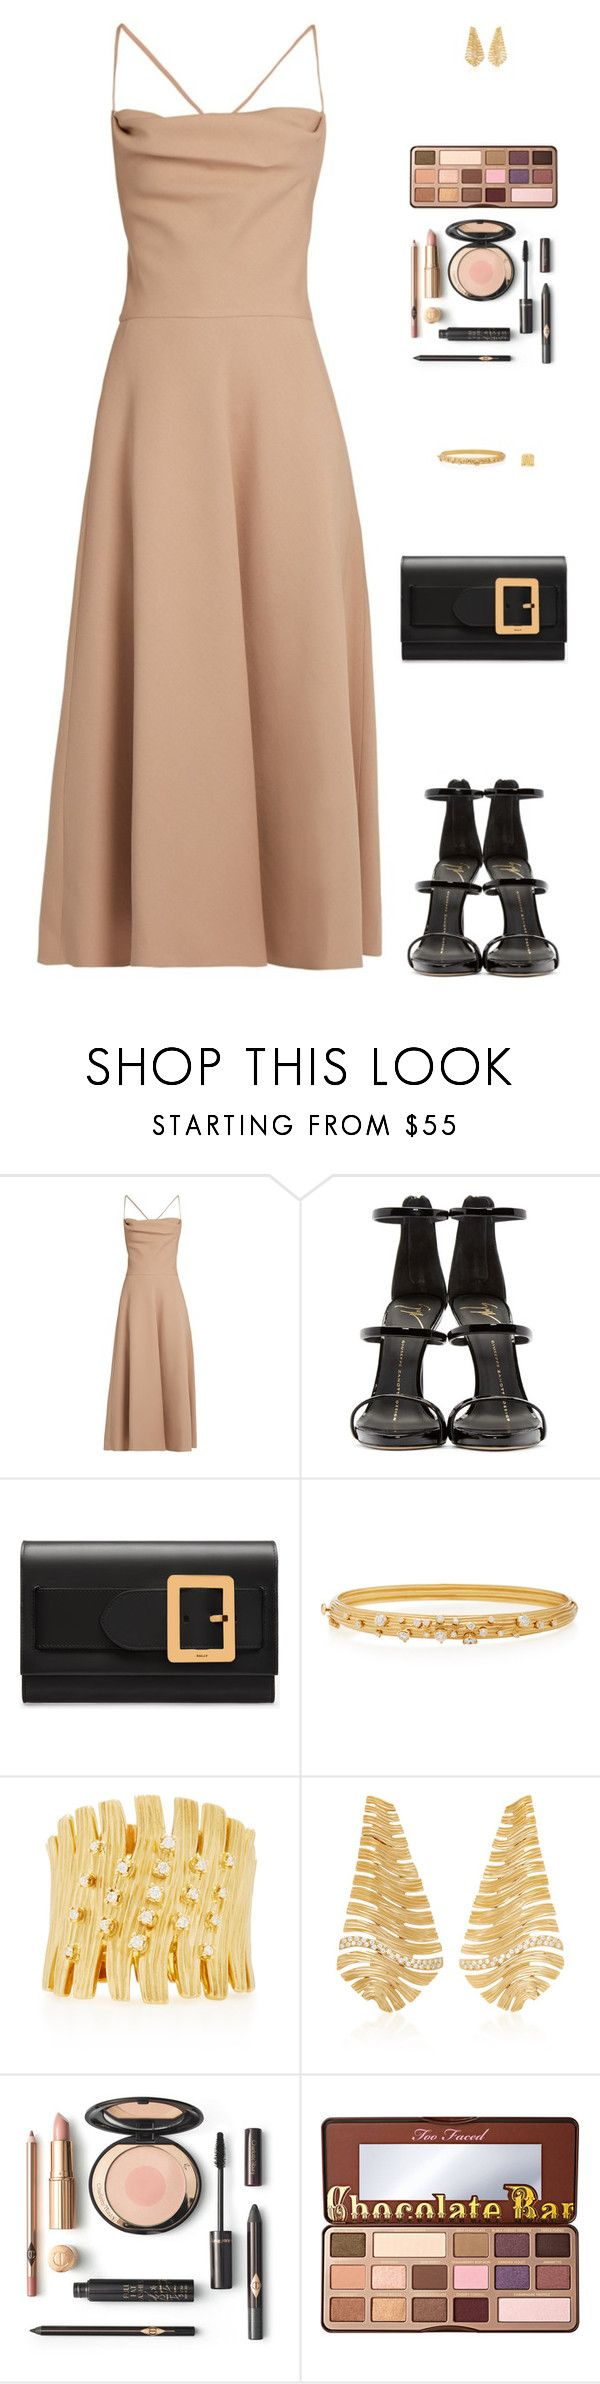 """Sin título #4882"" by mdmsb on Polyvore featuring moda, Valentino, Giuseppe Zanotti, Bally, Hueb y Too Faced Cosmetics"